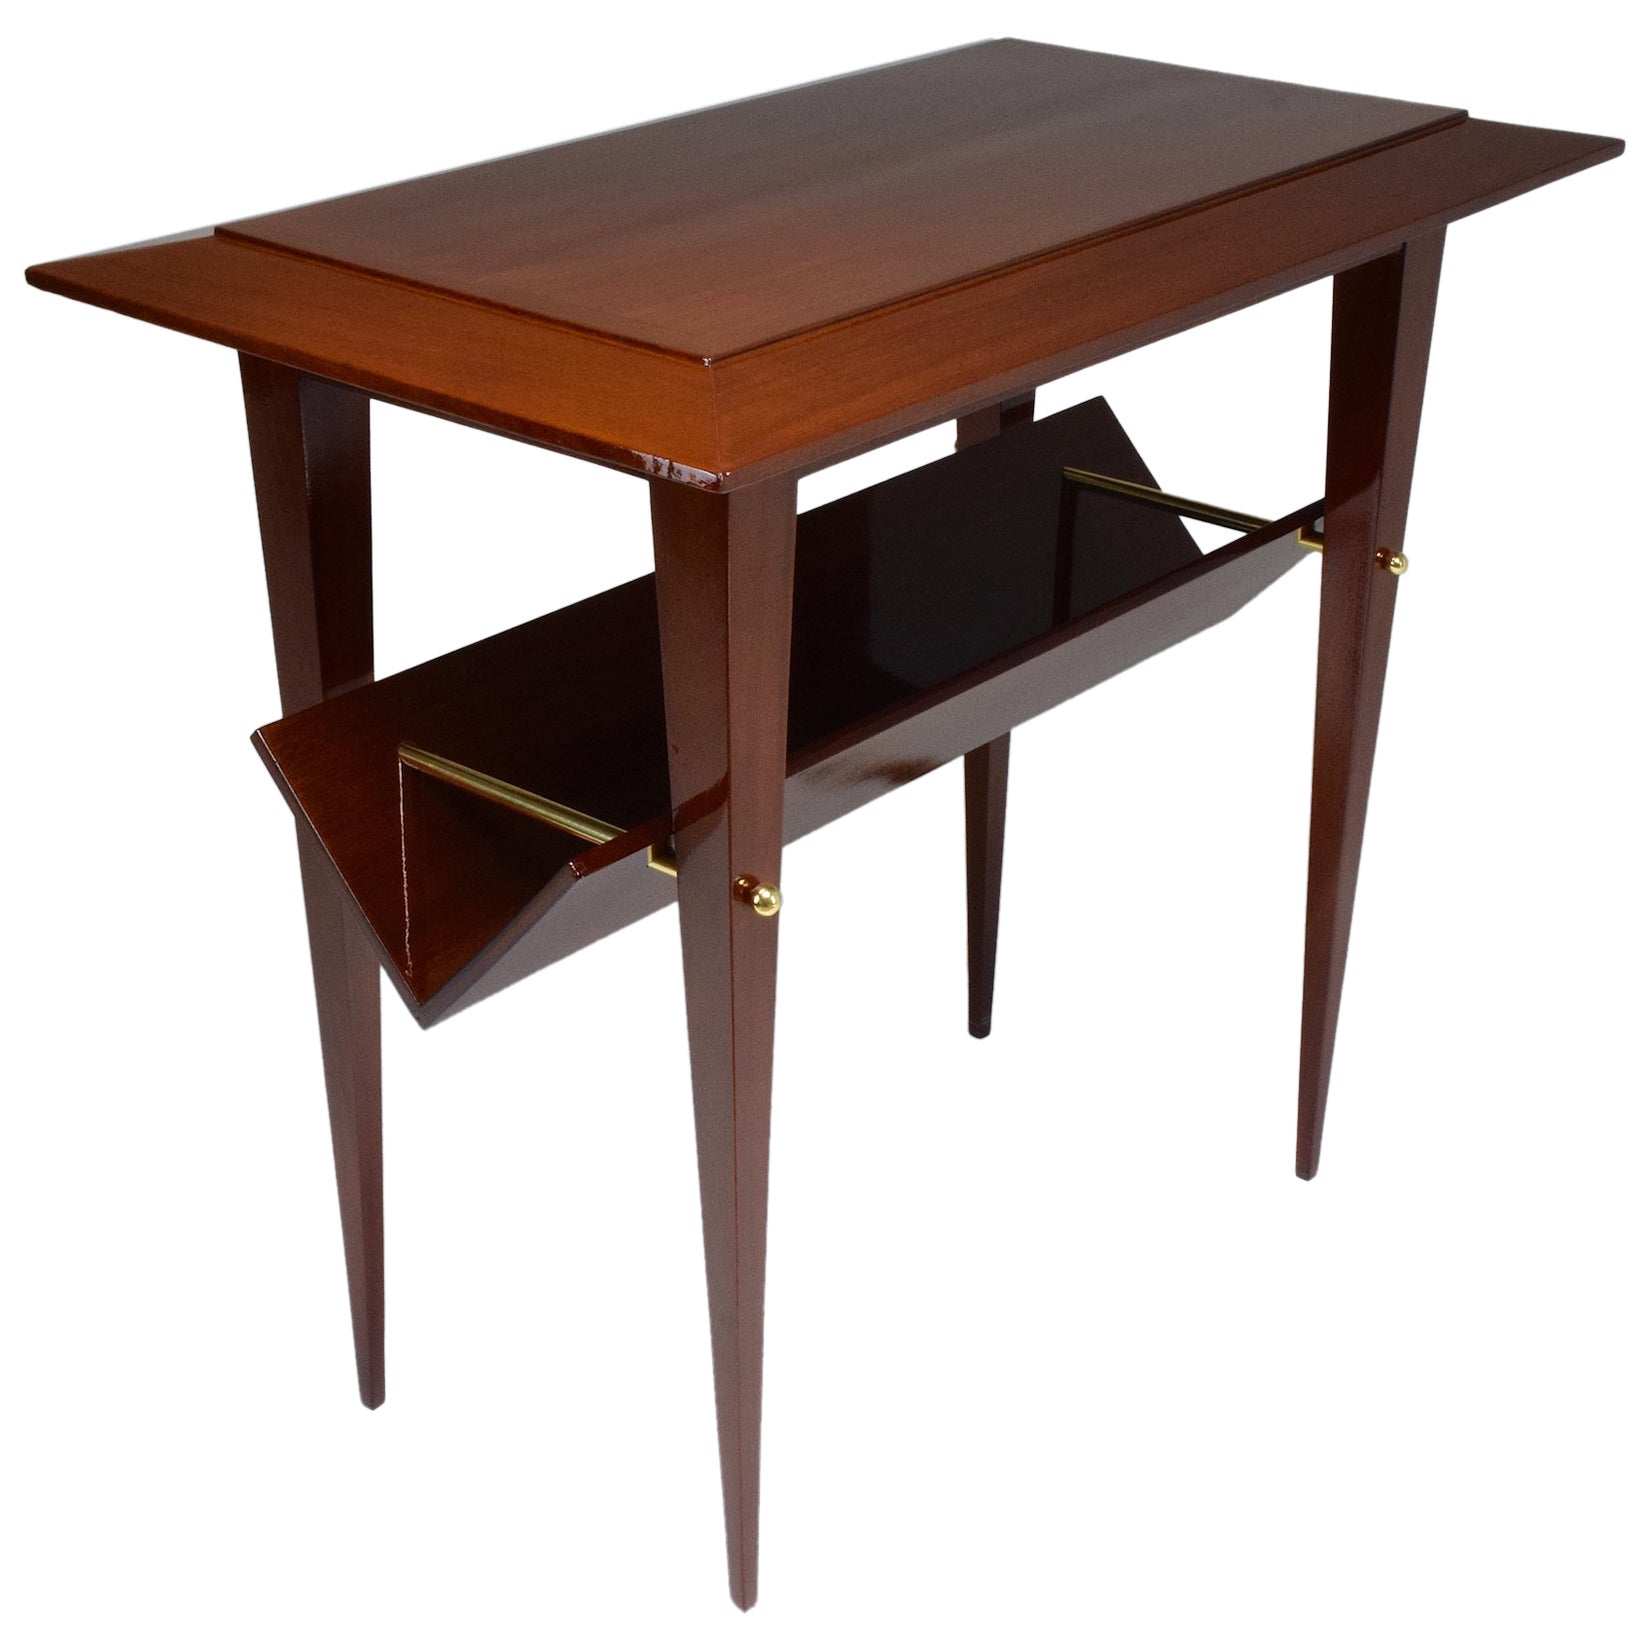 French Midcentury Mahogany Side Table Attributed to Raphael, 1950s